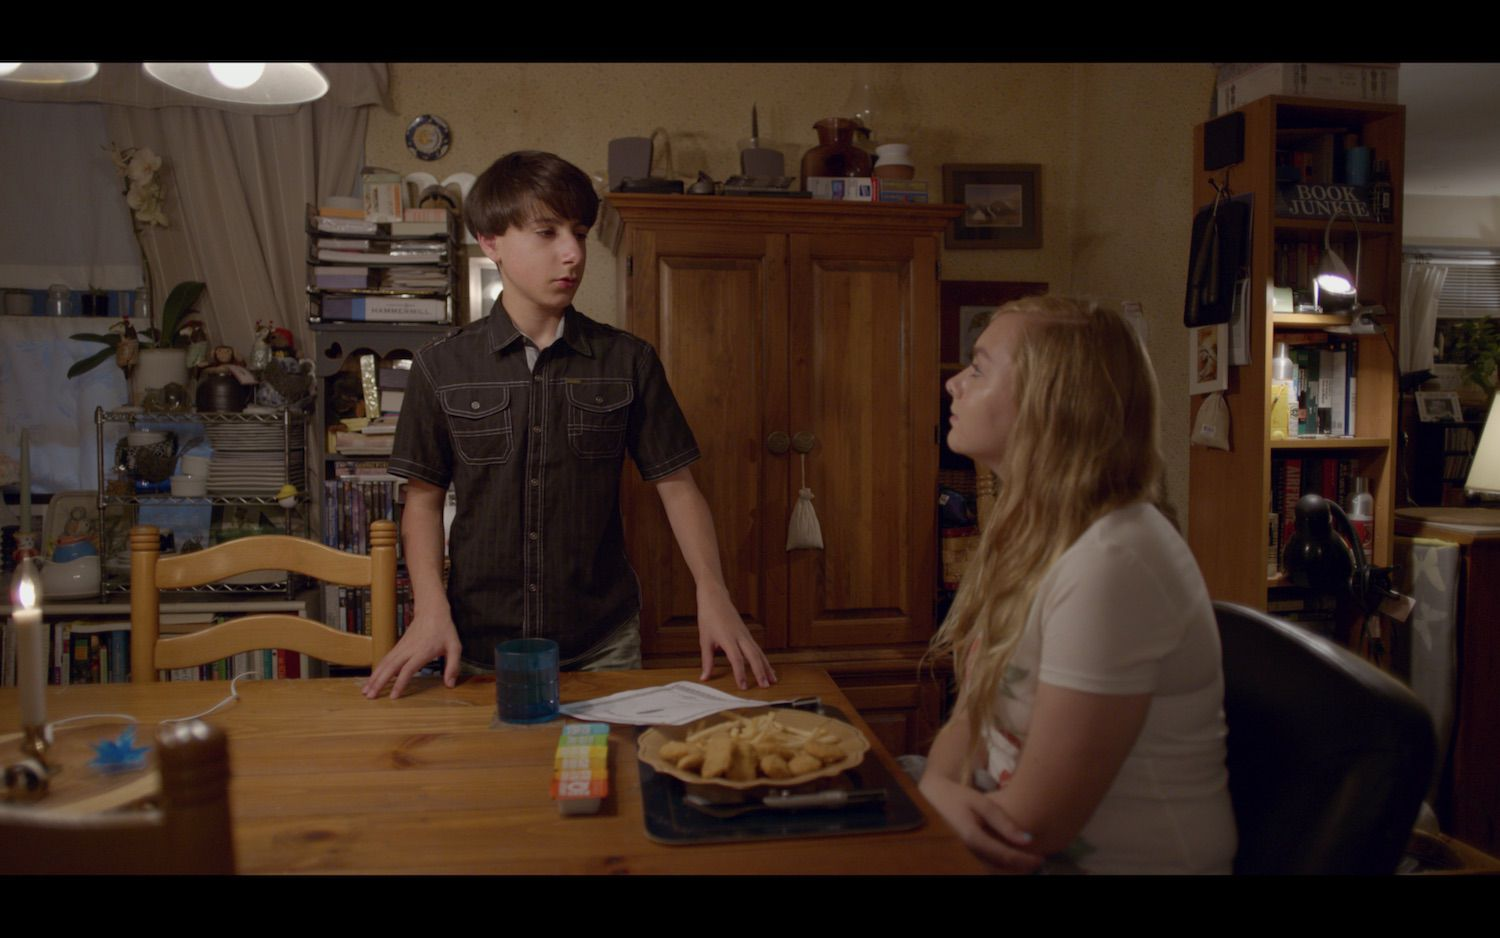 Eighth Grade film still at table with chicken nuggets.